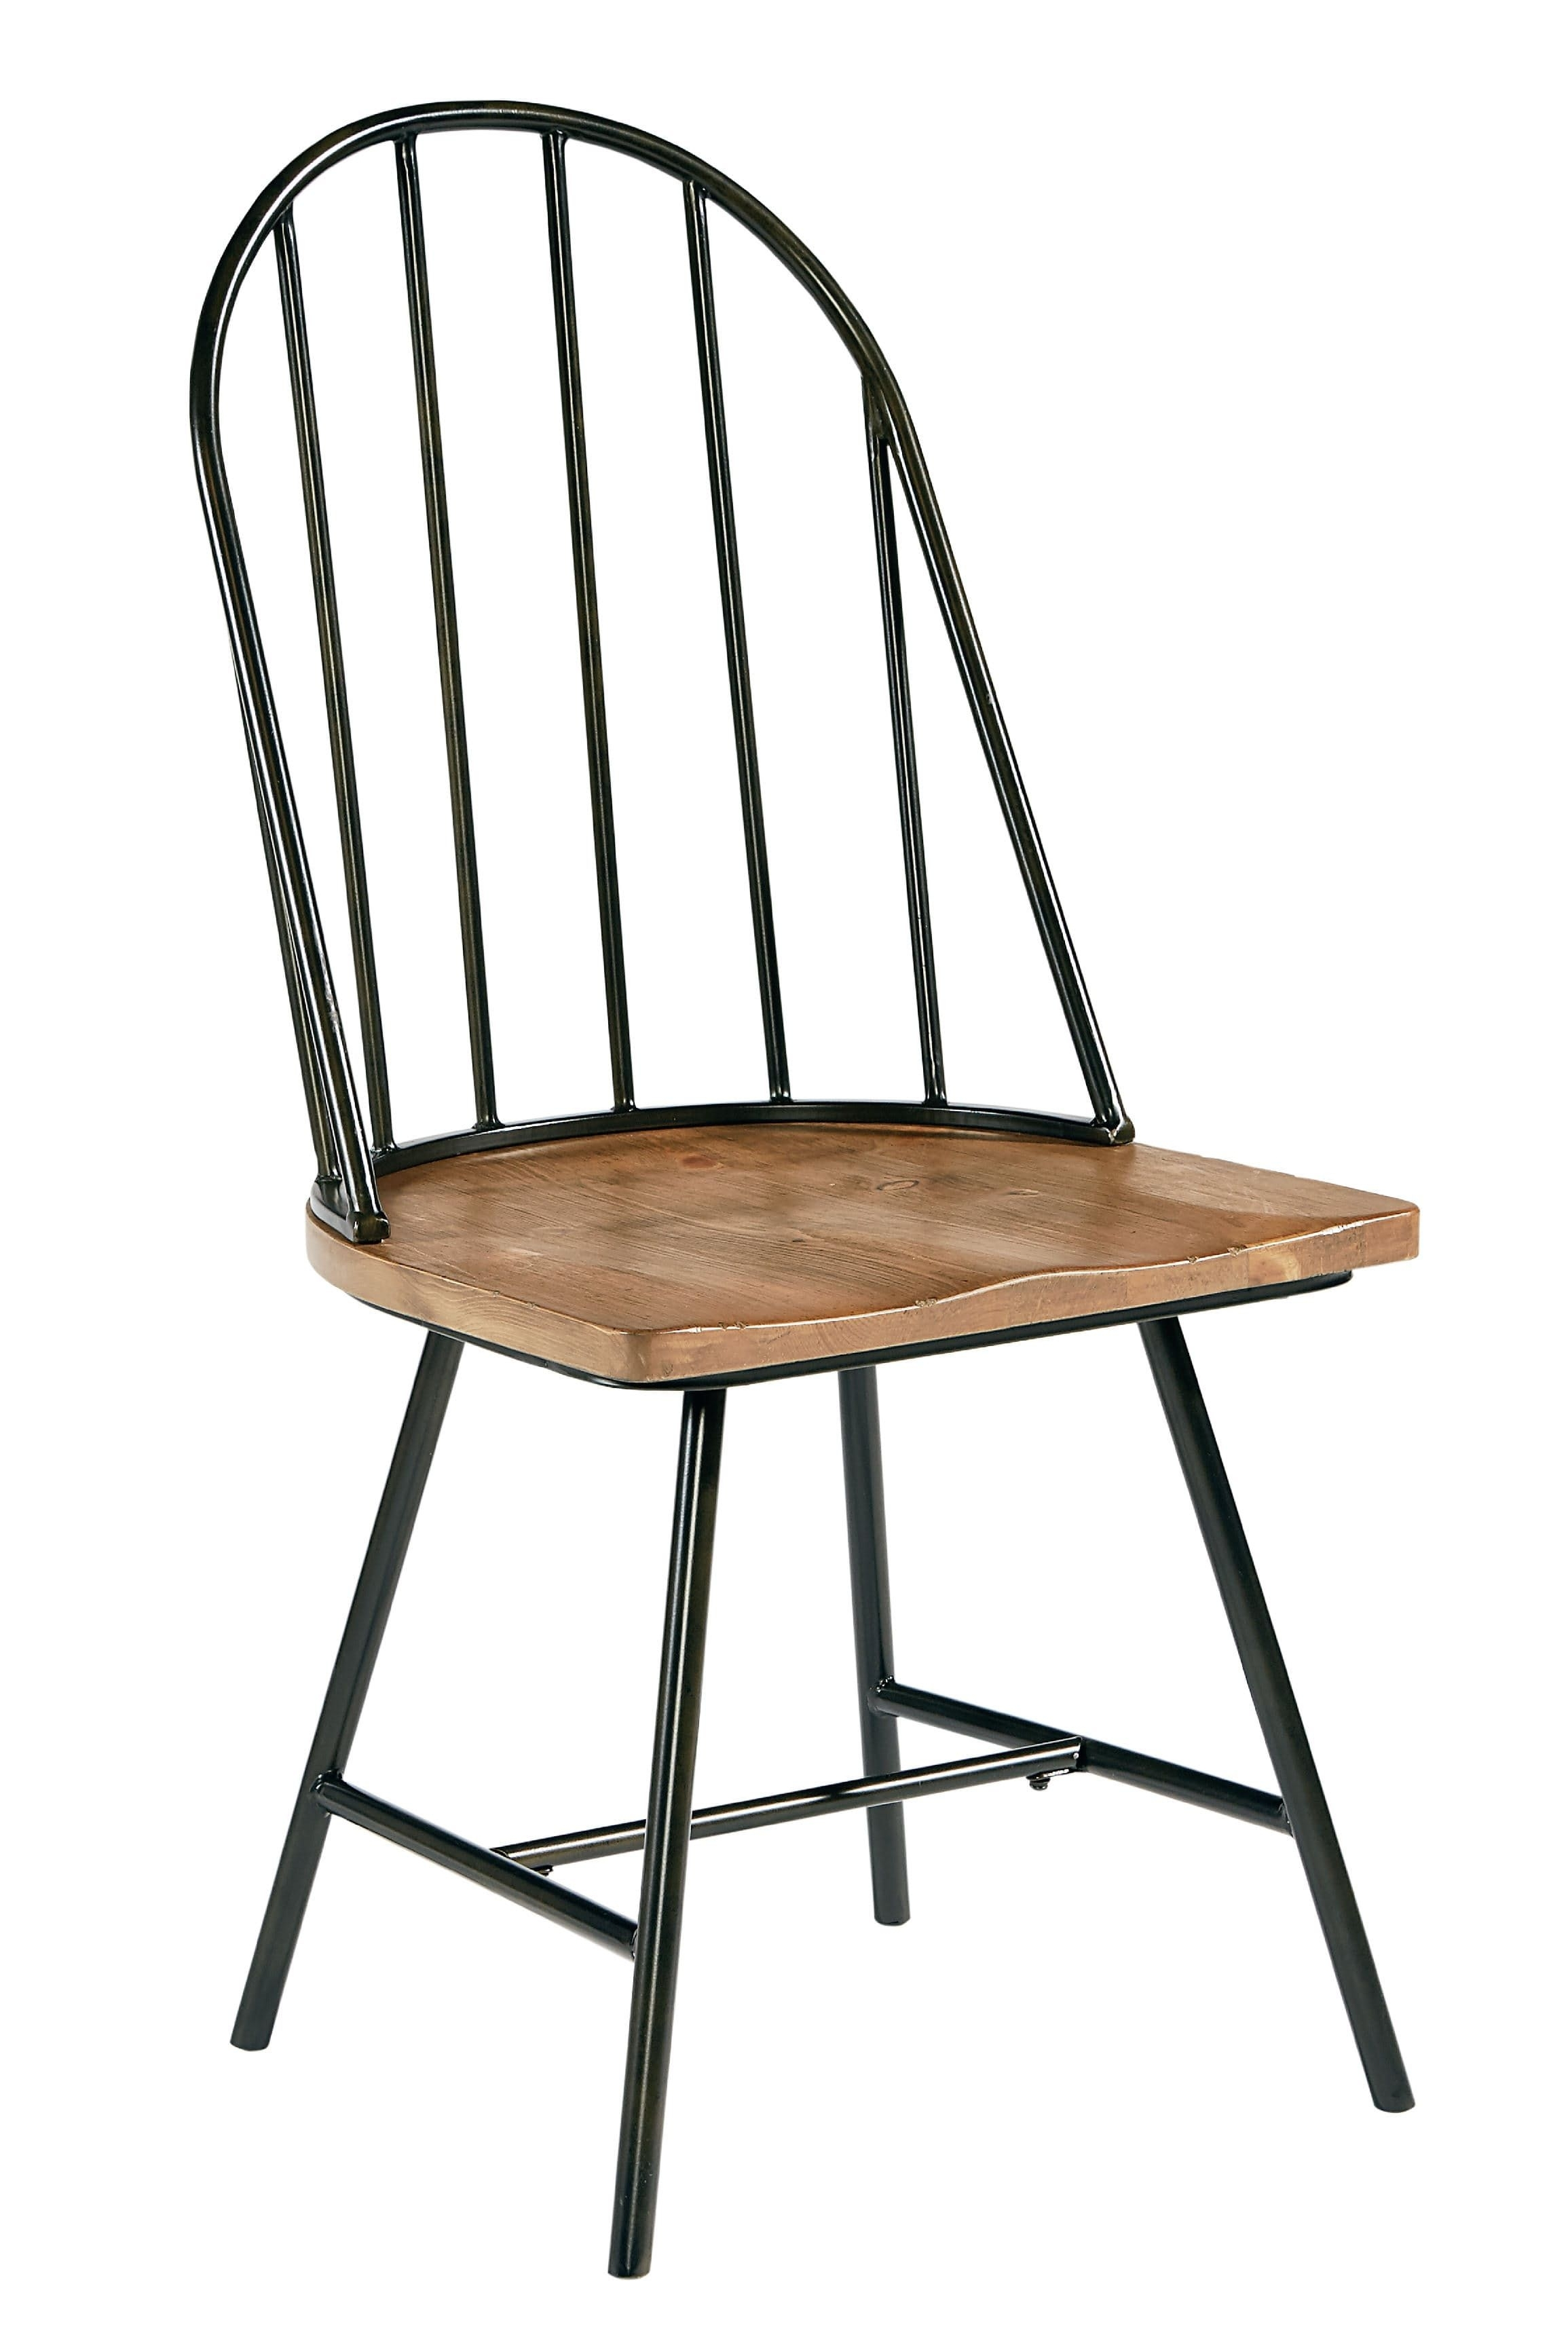 Most Recently Released Magnolia Home Molded Shell Saddle Side Chairs With Magnolia Home – Windsor Metal And Wood Hoop Chair St: (View 7 of 20)